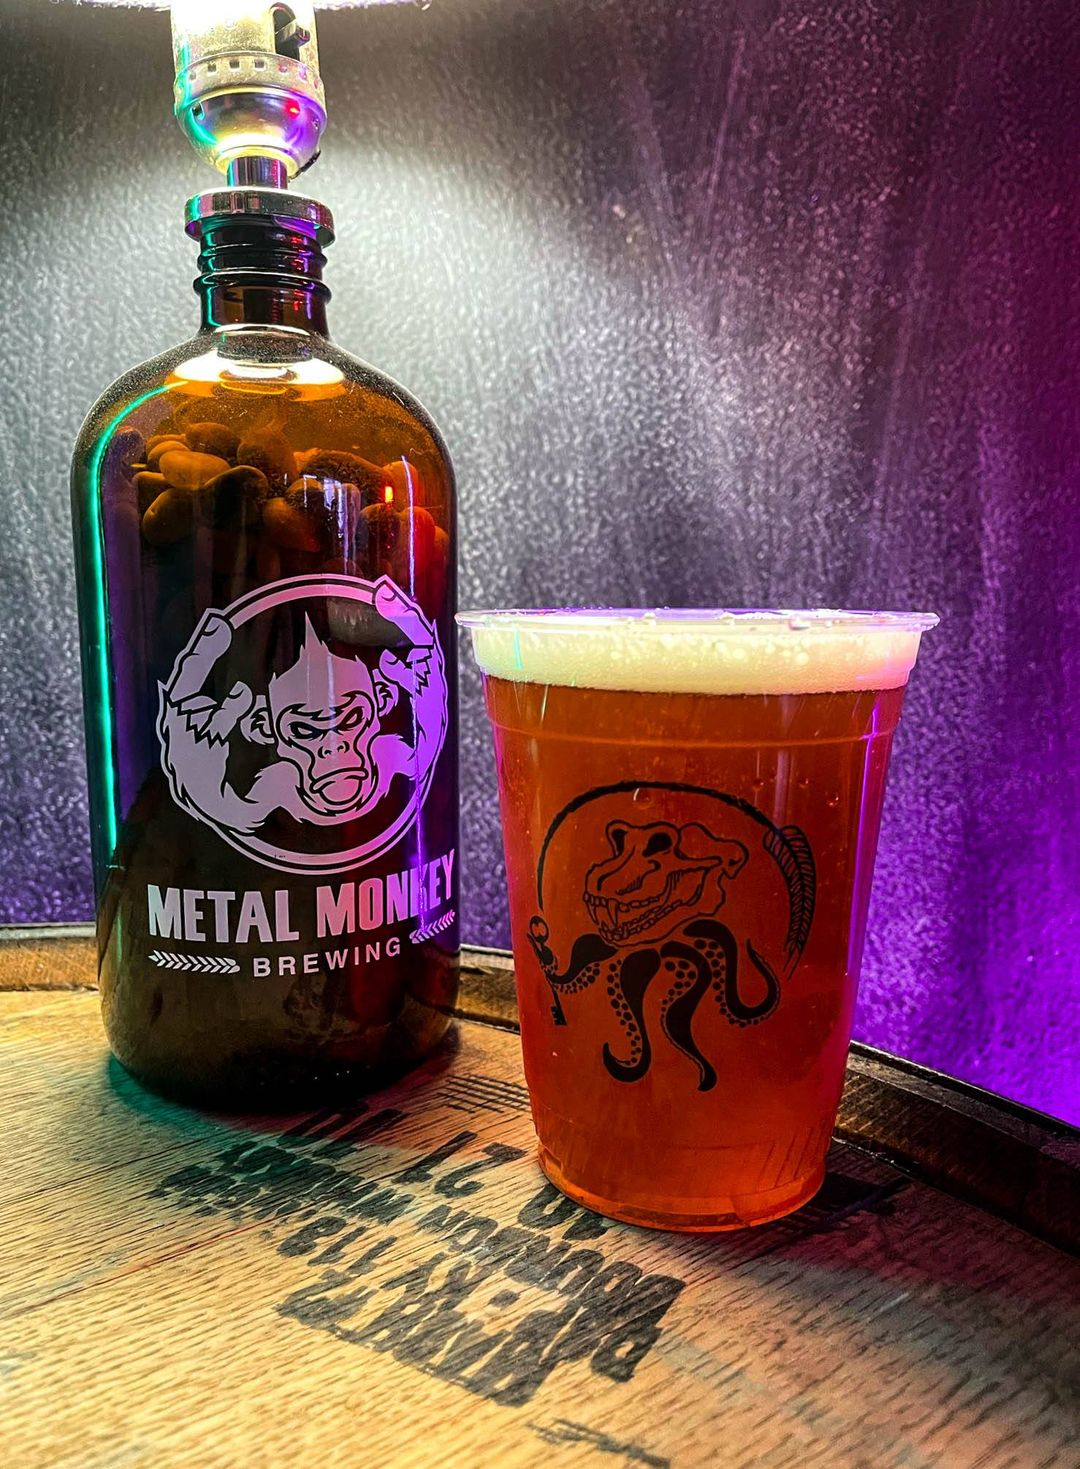 Howler and a glass of beer at Metal Monkey Brewing